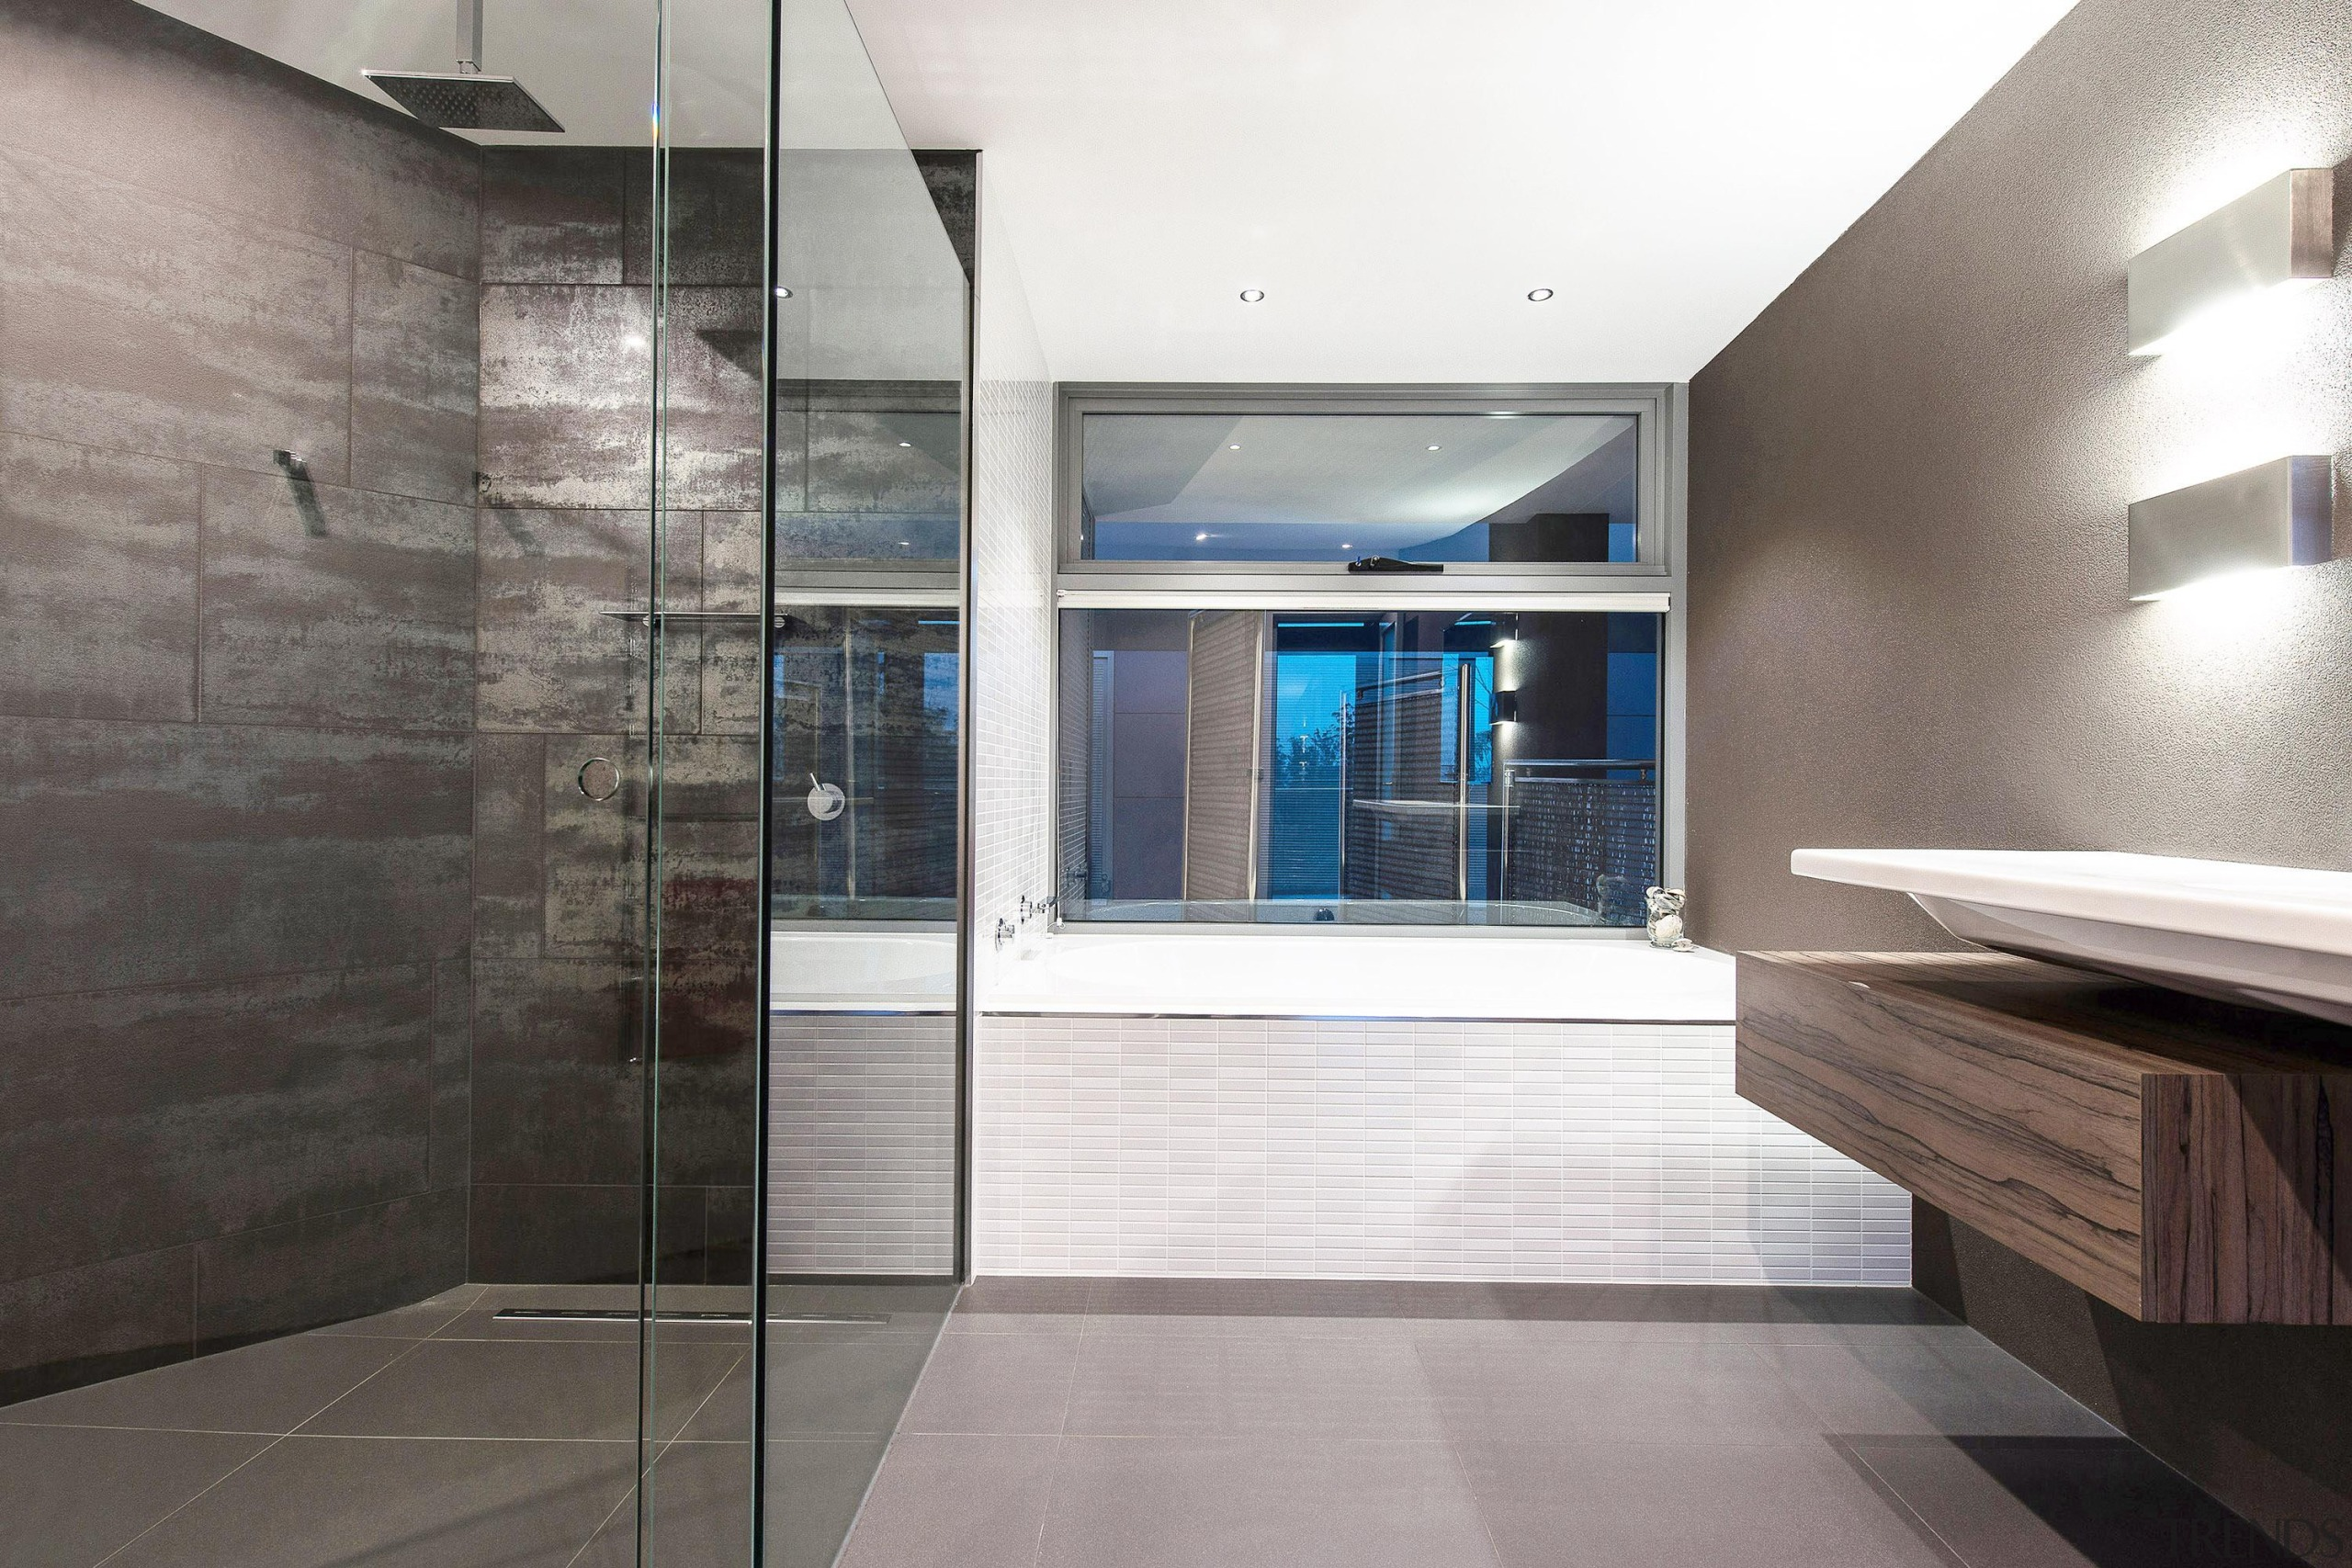 Winner Bathroom Design of the Year 2013 Tasmania architecture, bathroom, daylighting, floor, flooring, glass, house, interior design, lobby, property, real estate, tile, wall, wood flooring, gray, white